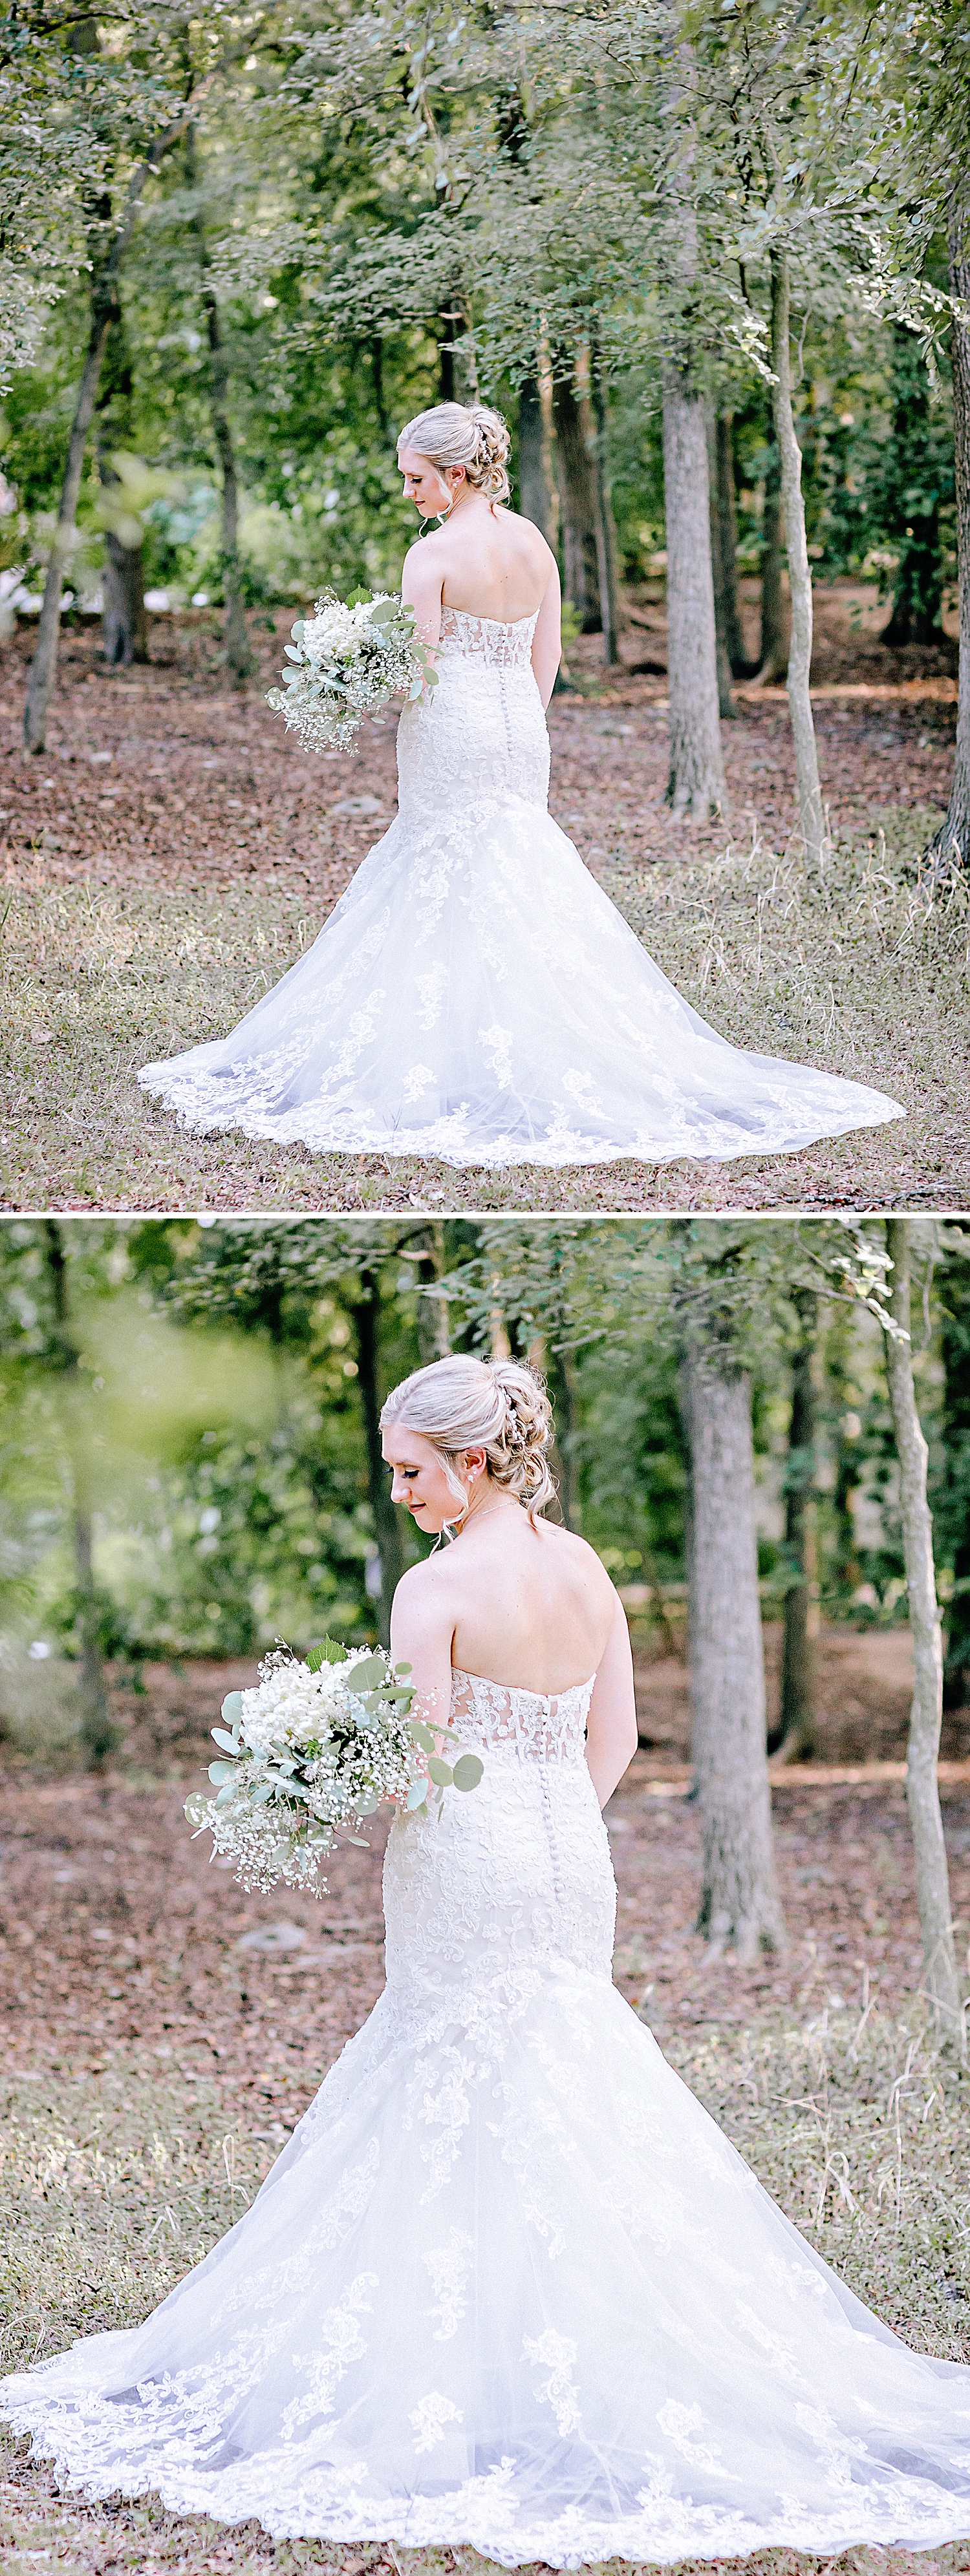 Carly-Barton-Photography-Bridal-Photos-Gruene-Rustic-New-Braunfels-Wedding-Photographer_0005.jpg